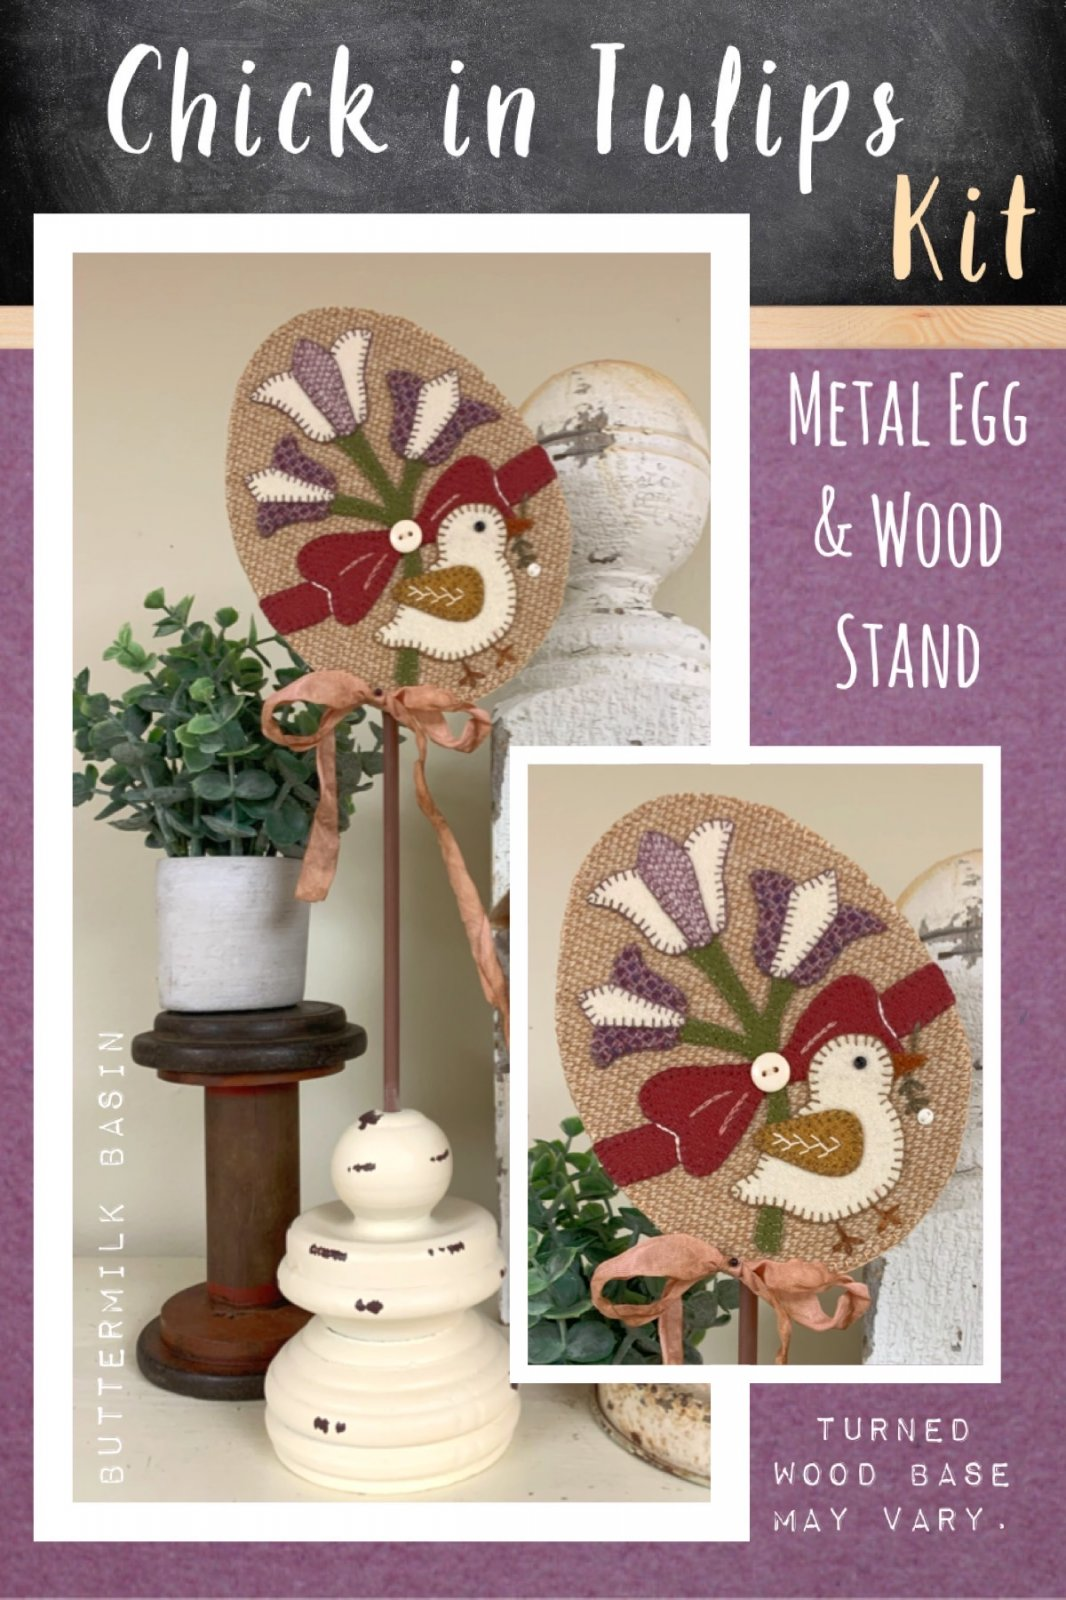 Chick in Tulips Egg * Kit, Pattern, Metal Egg & Wood Stand